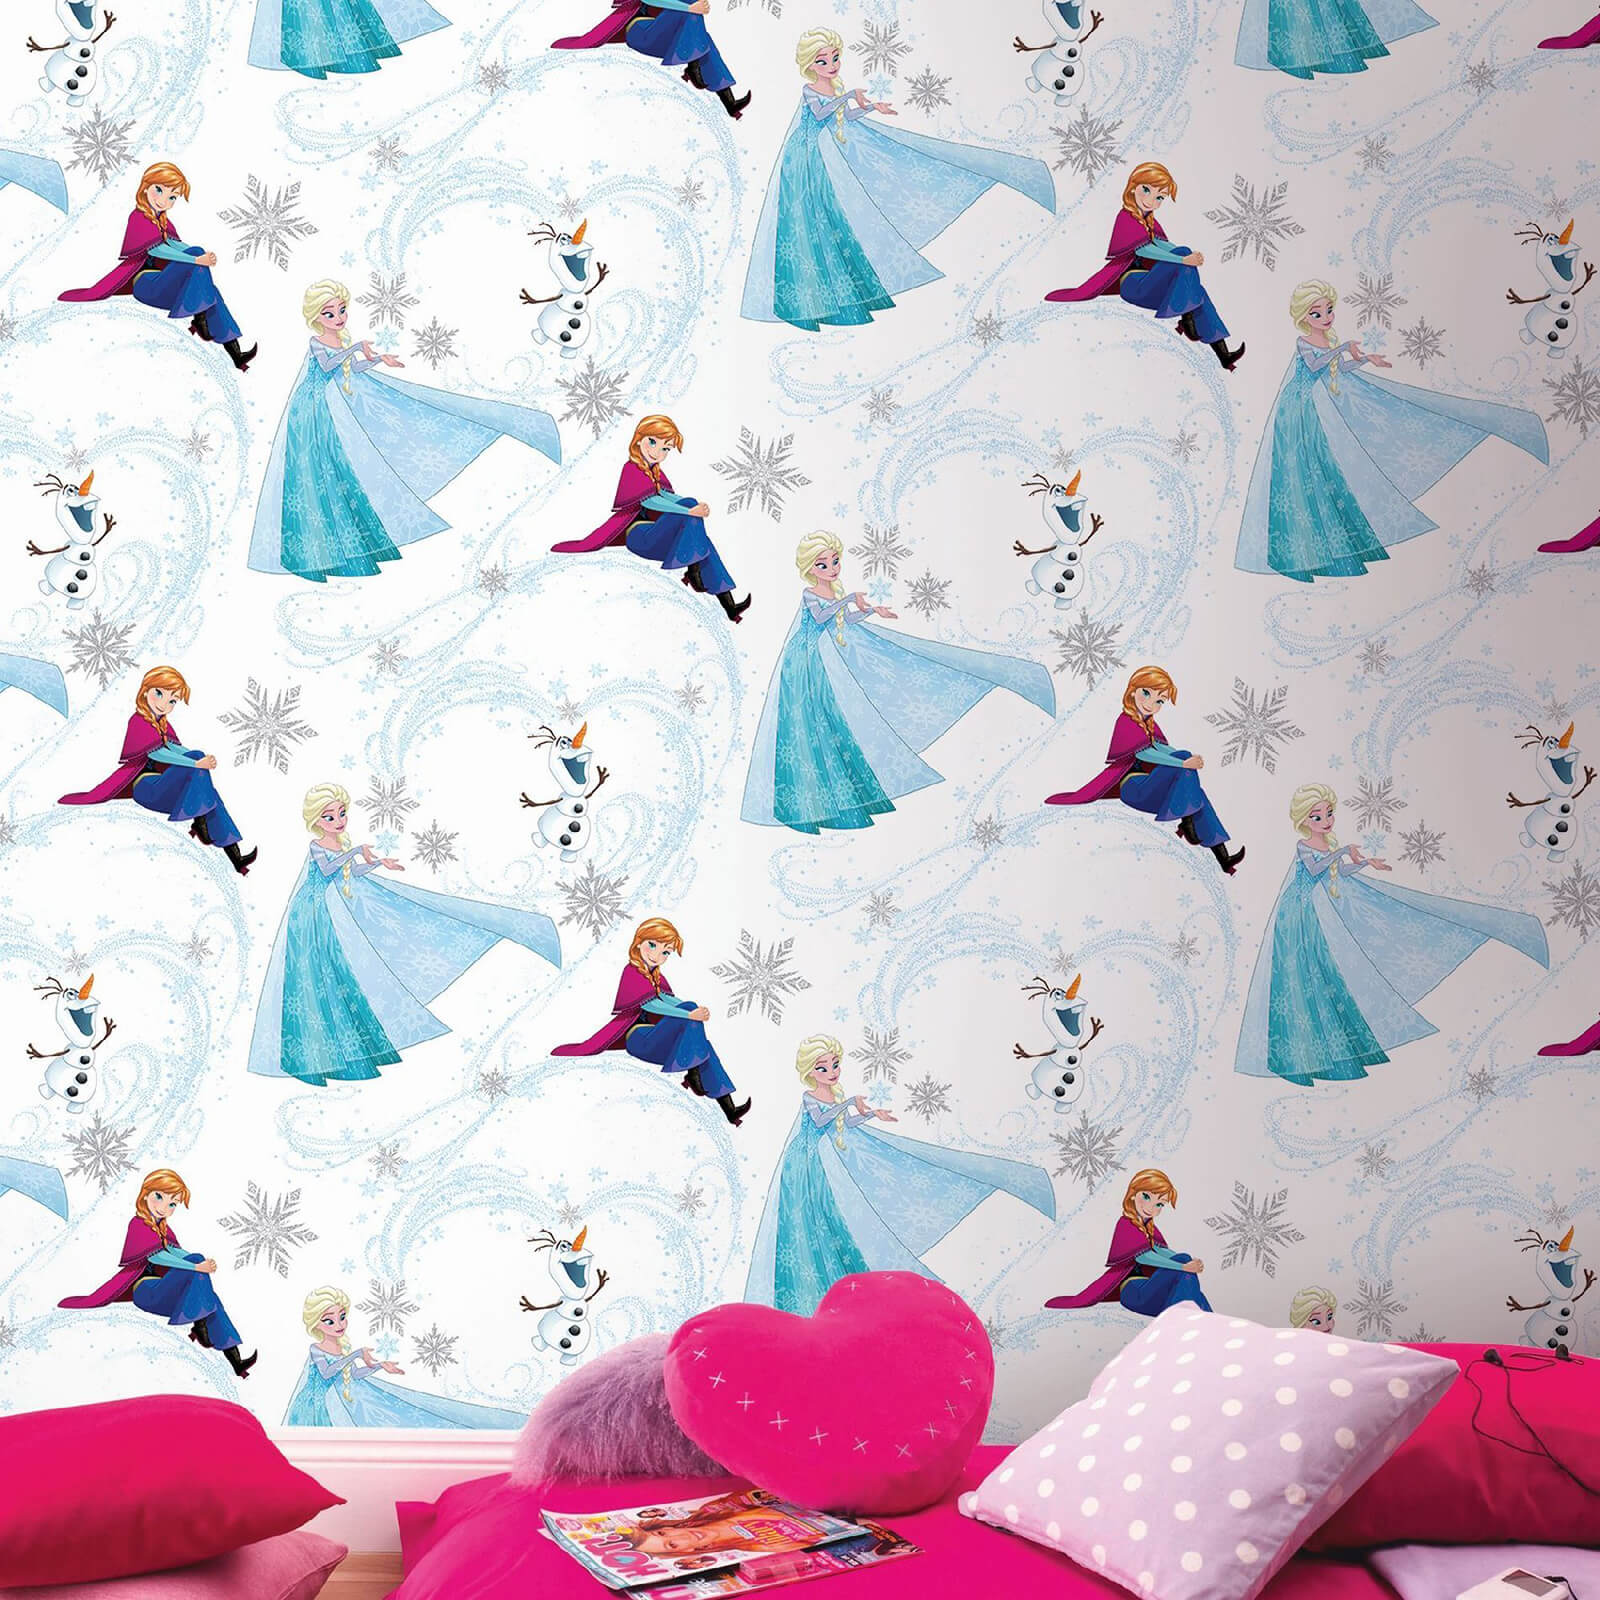 Disney Frozen Anna Elsa Blue Shimmer Wallpaper